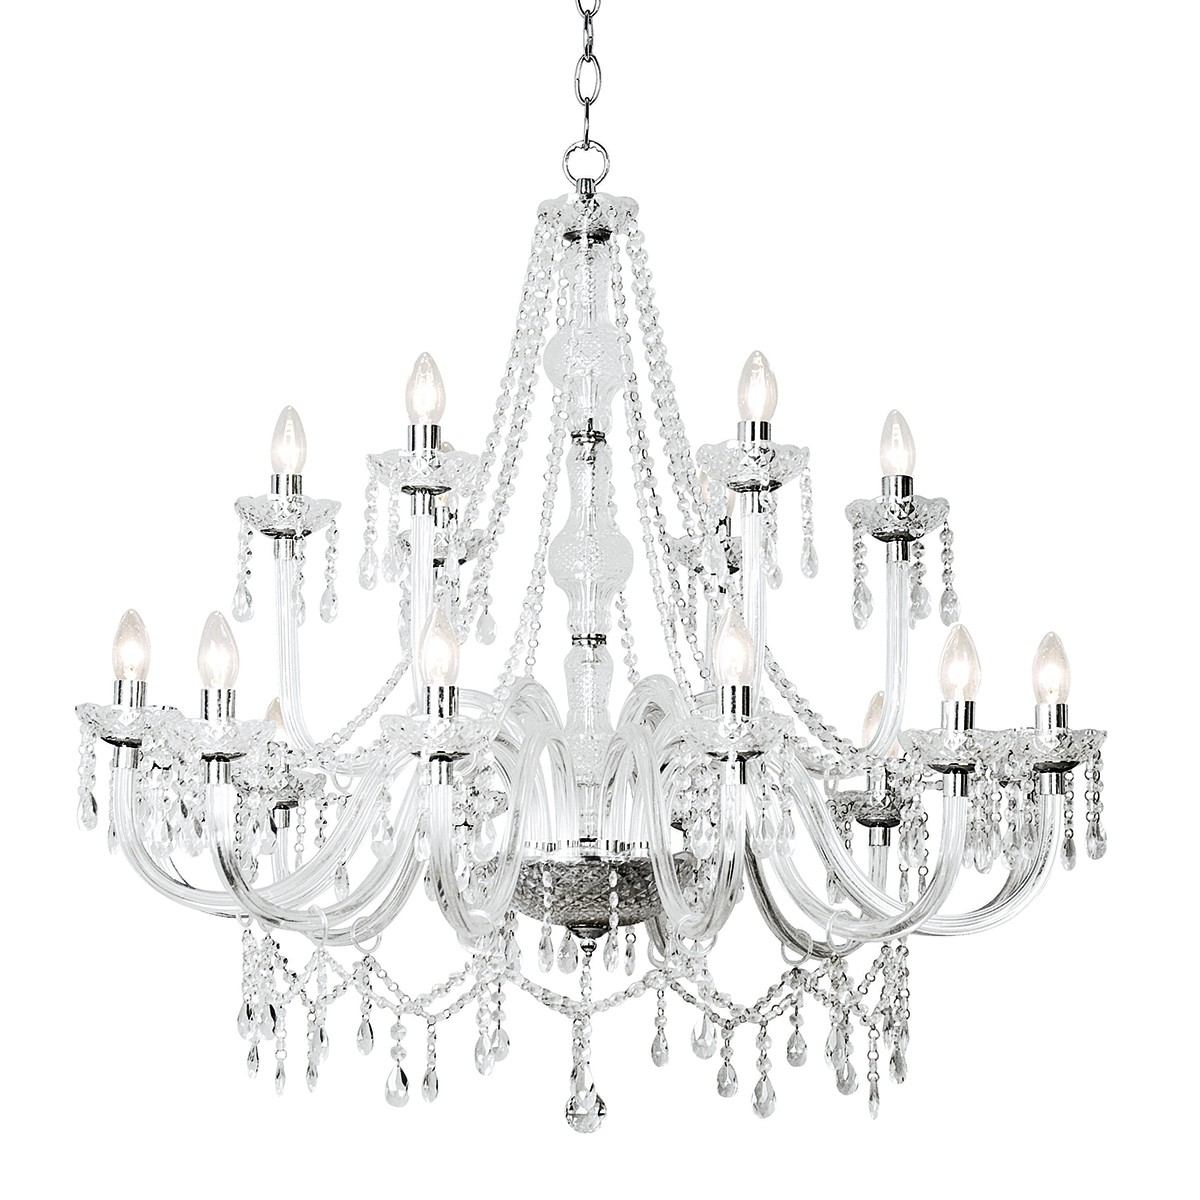 Katie 18 Light Chandelier Dual Mount Acrylic Glass Shade Sold Separately With Regard To 2018 Acrylic Chandelier Lighting (Gallery 11 of 20)